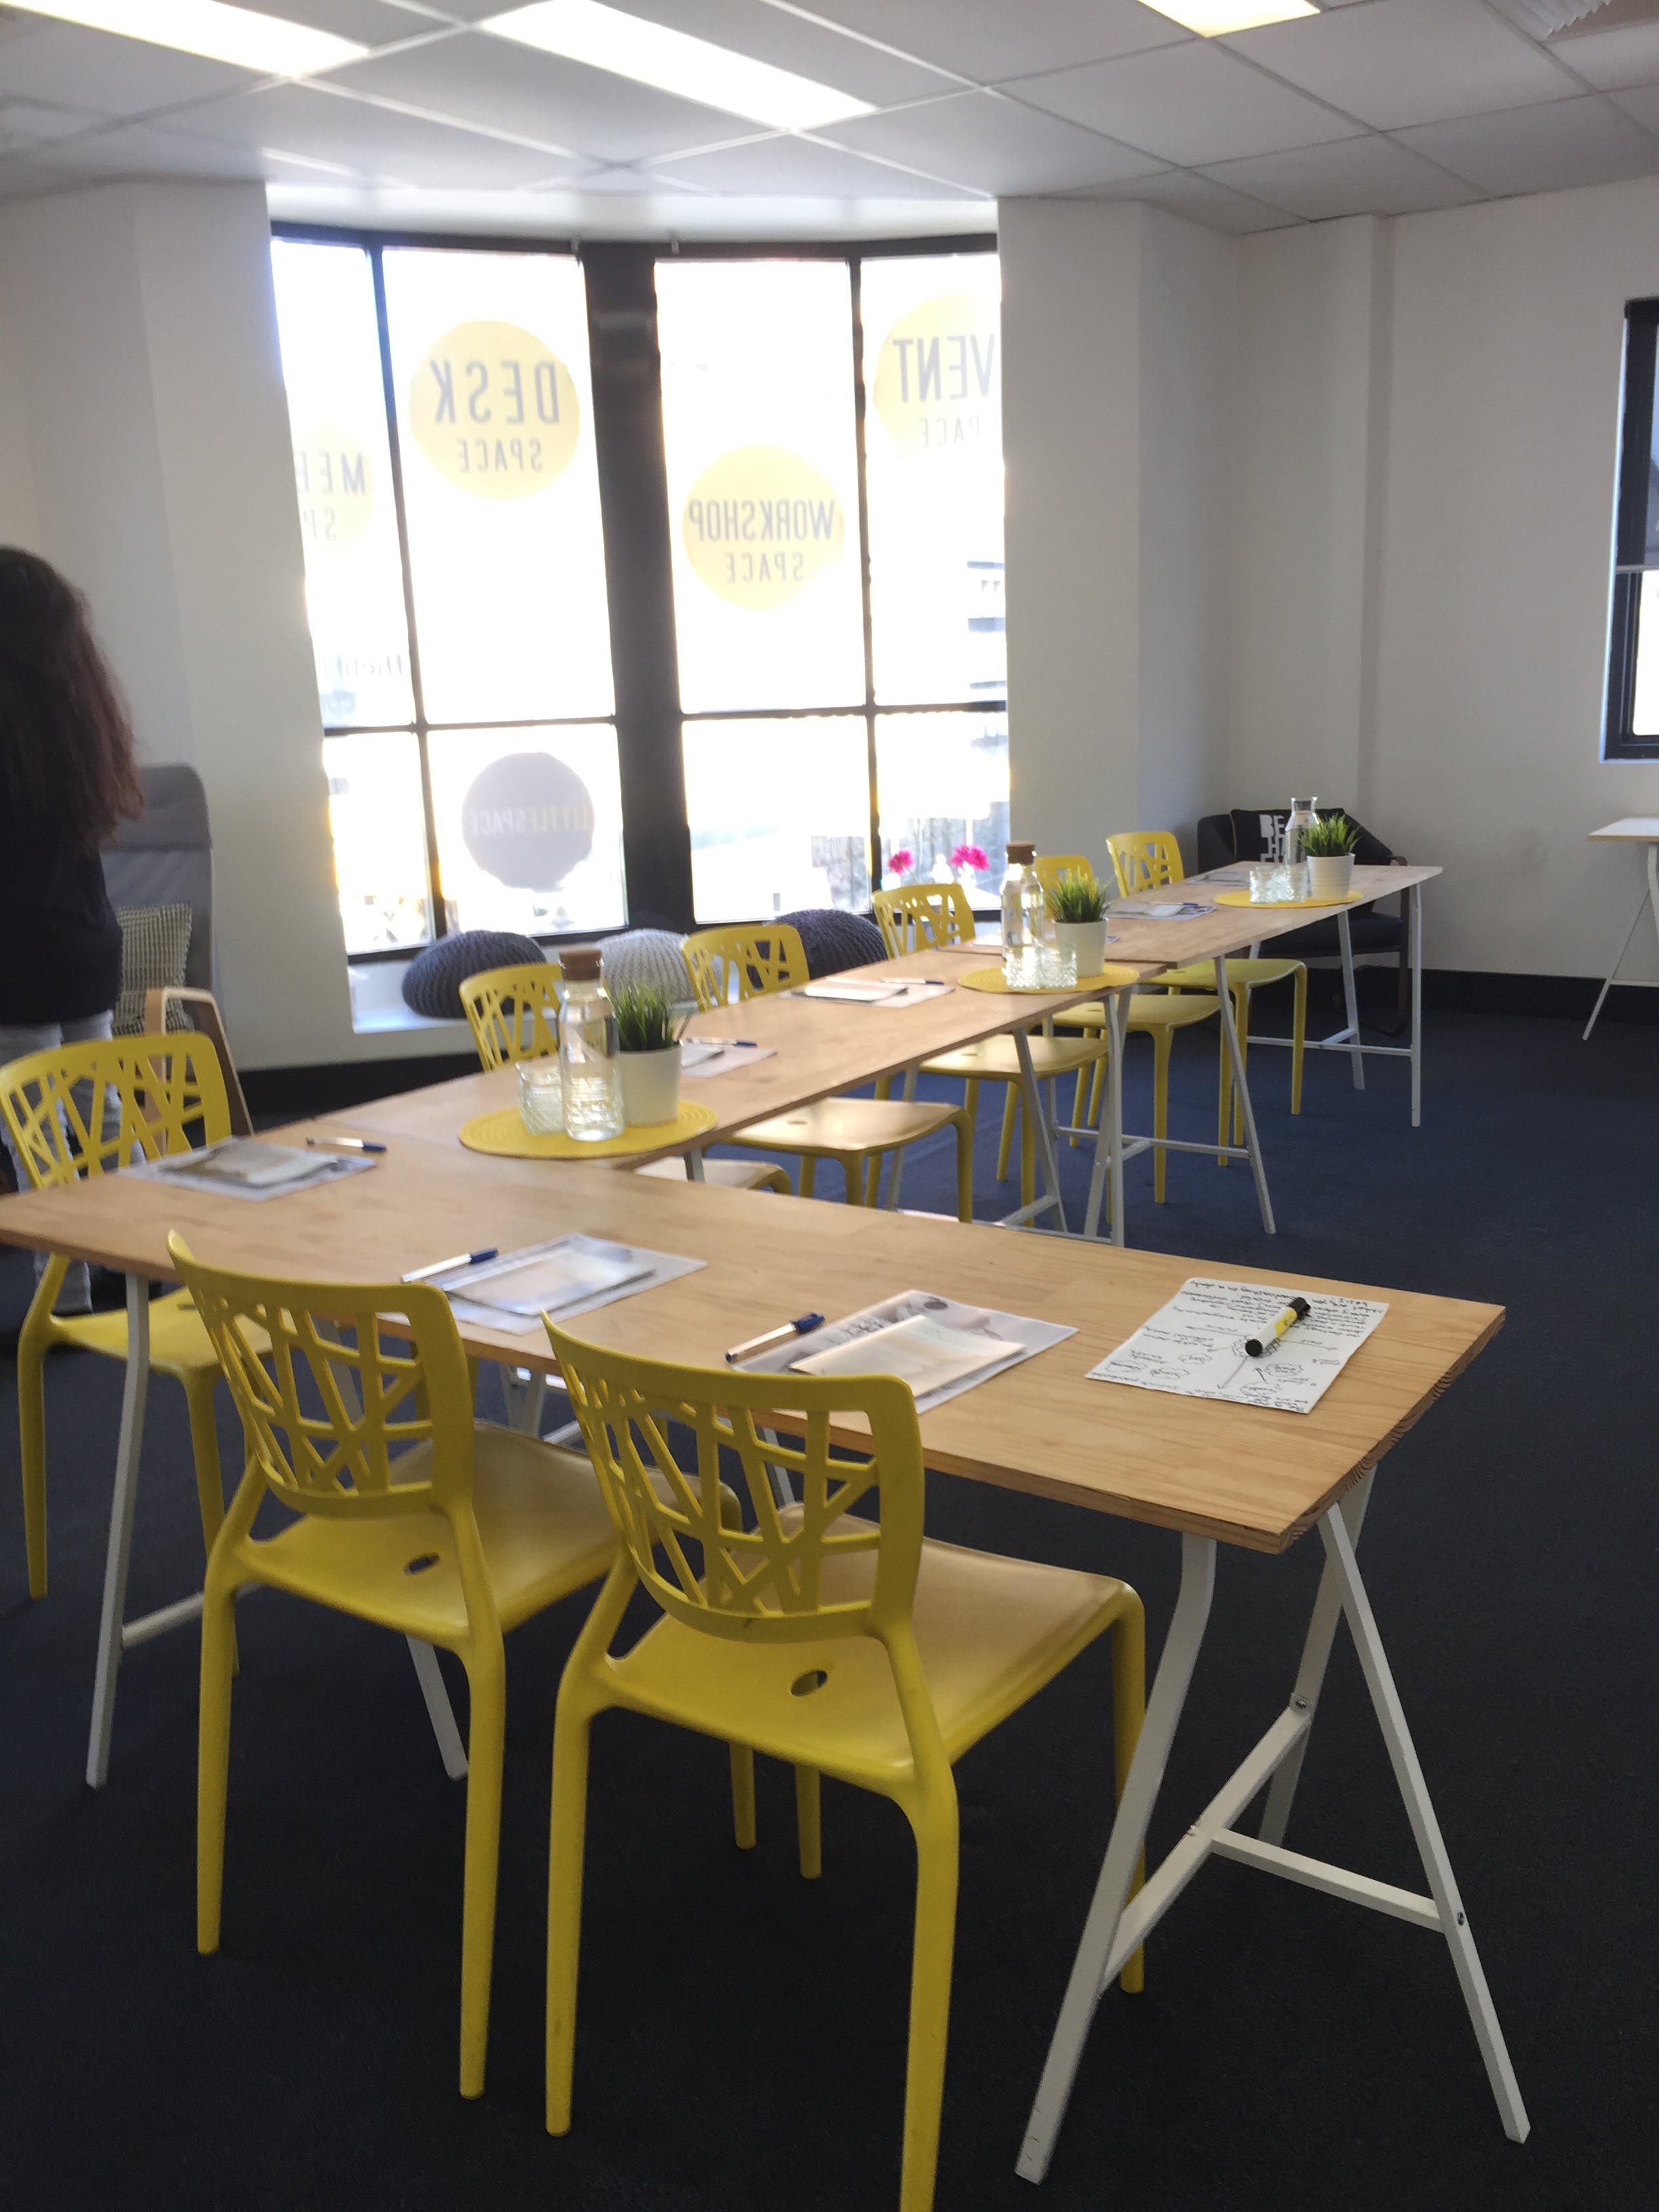 Meli Melo Workshop Space, workshop at The Little Space, image 1